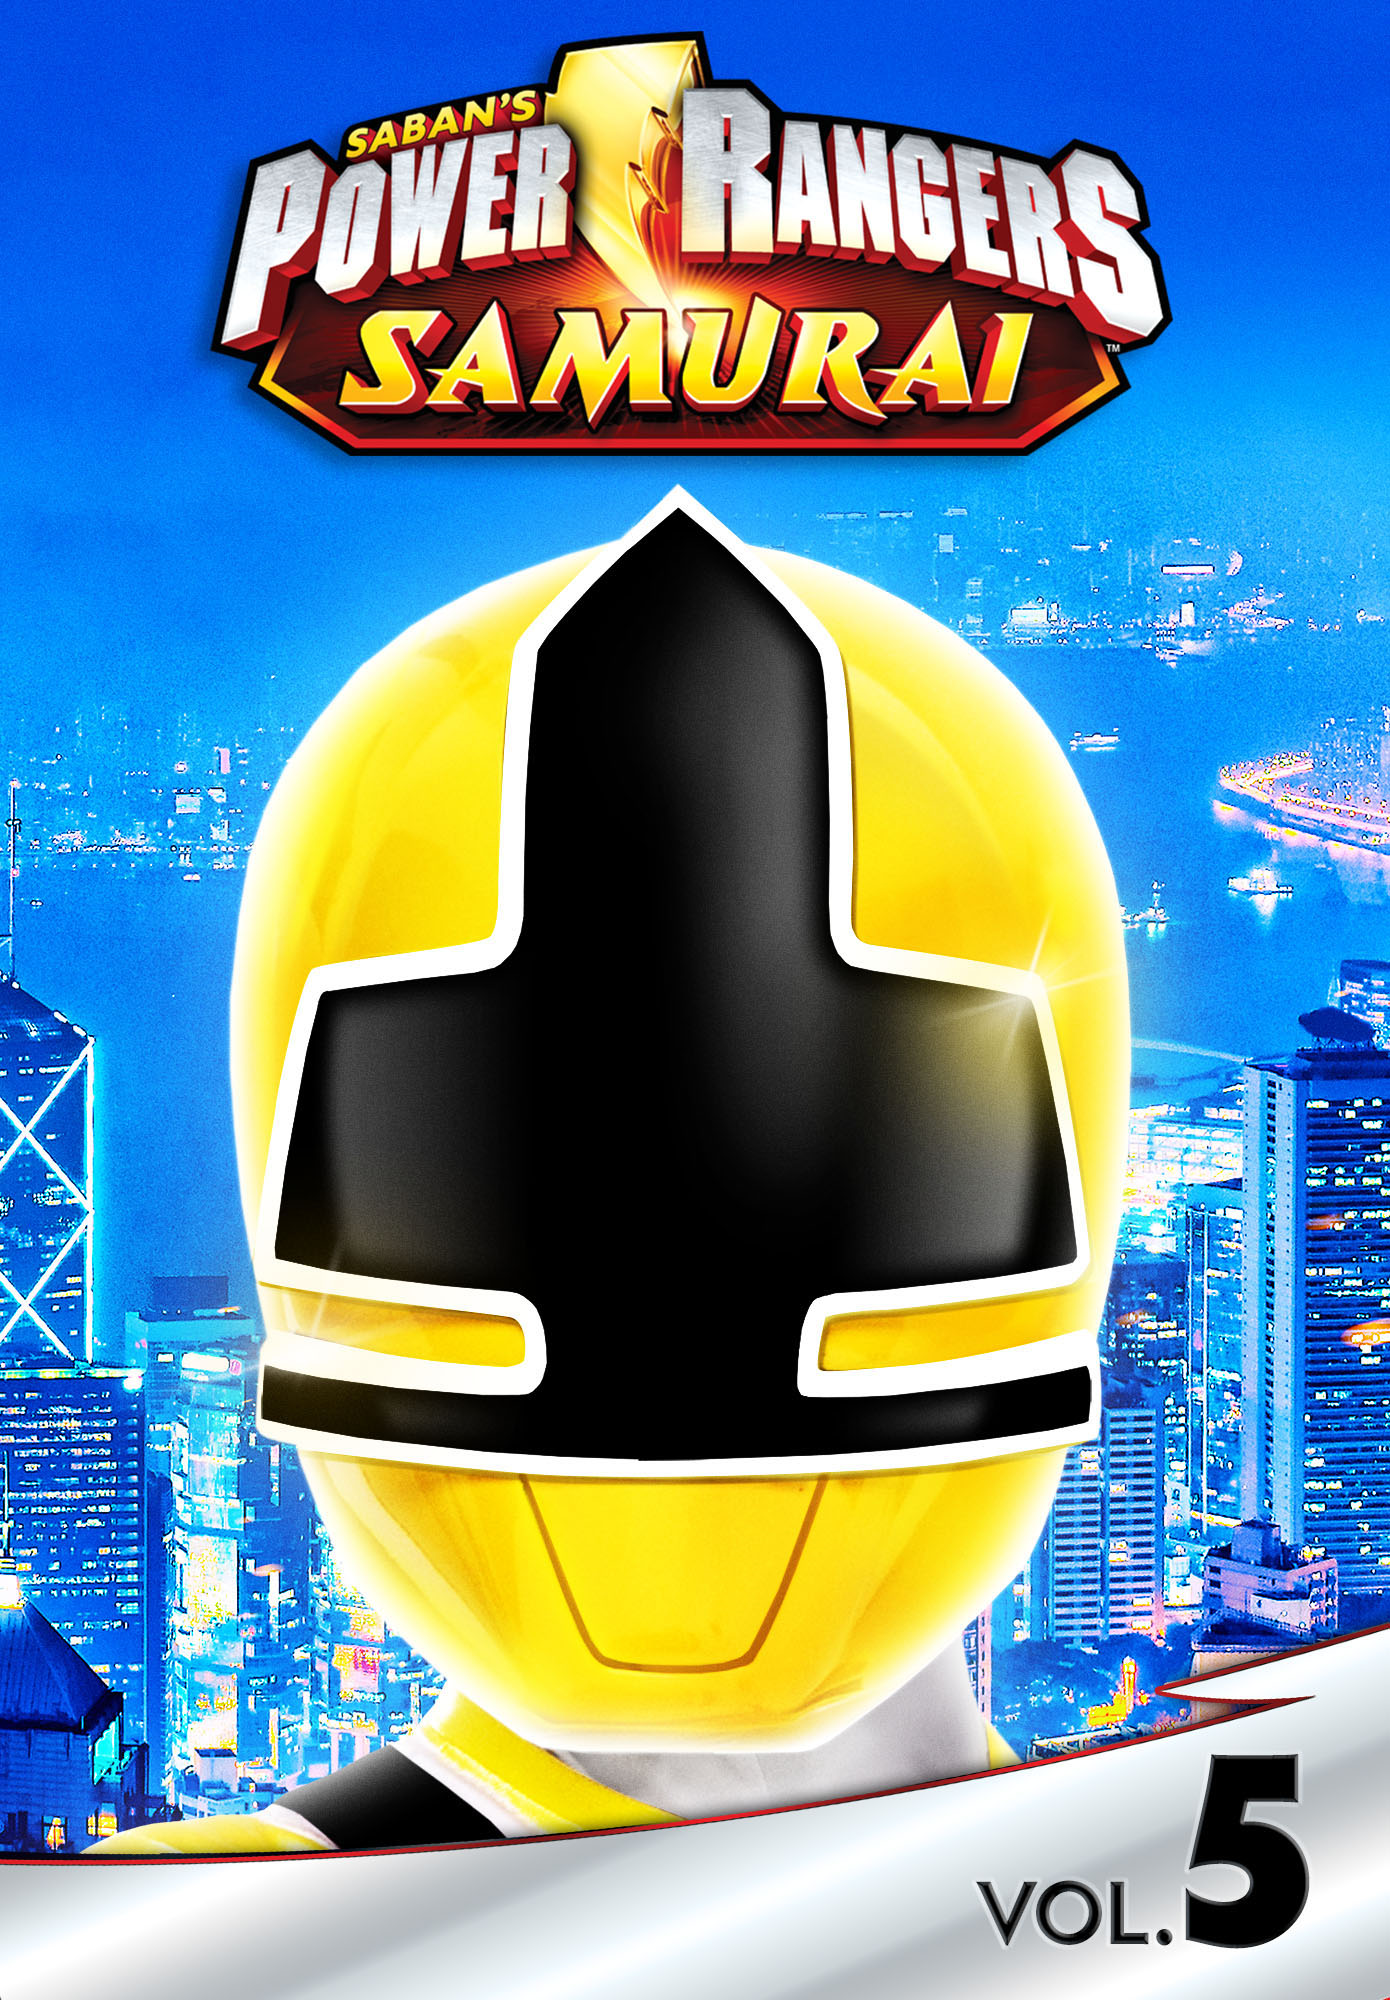 Power Rangers Samurai: The Ultimate Duel (Vol. 5)